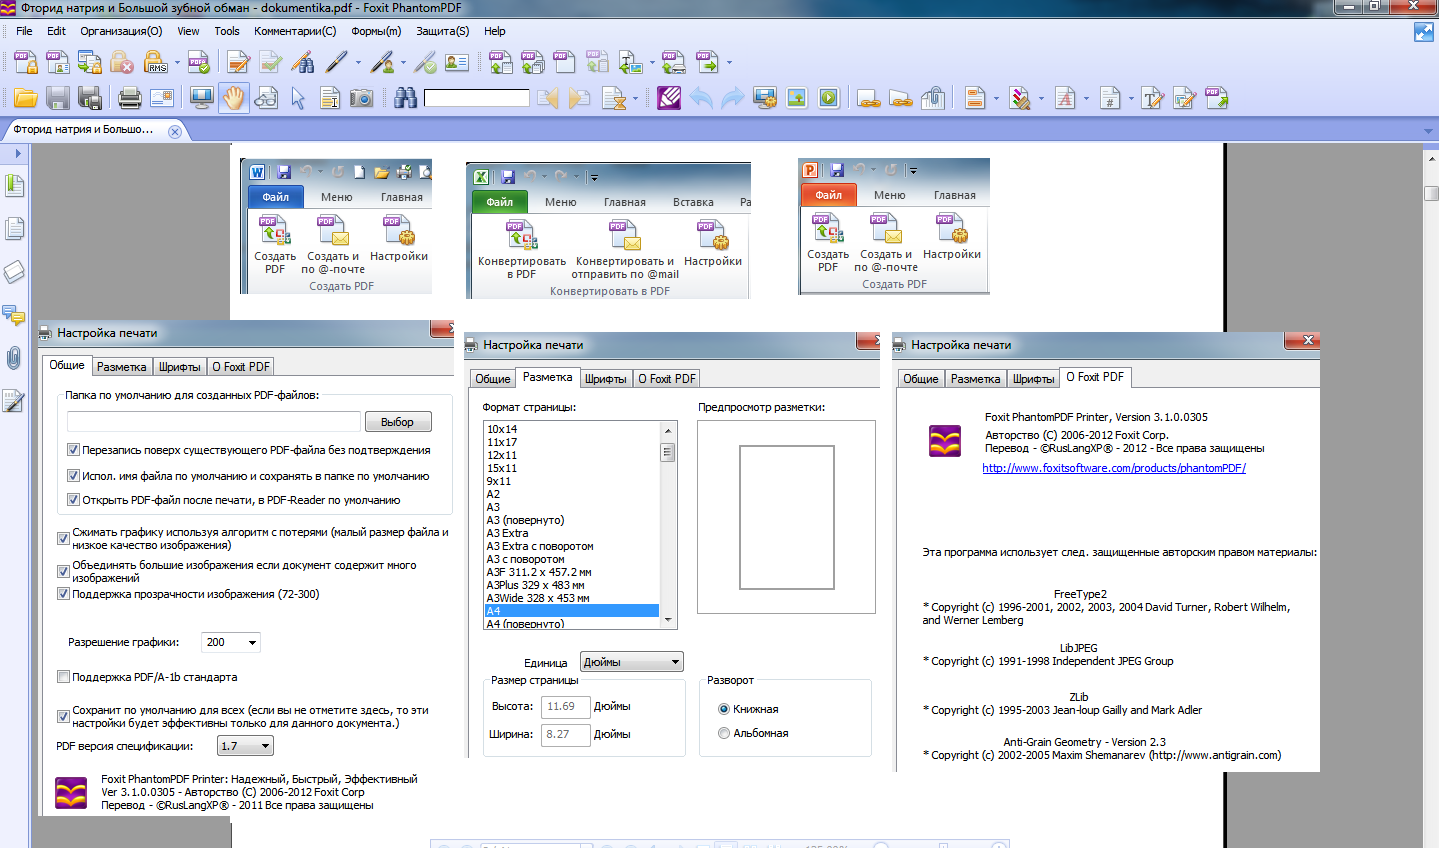 wondershare pdf editor 3 5 0 16 key keyboard